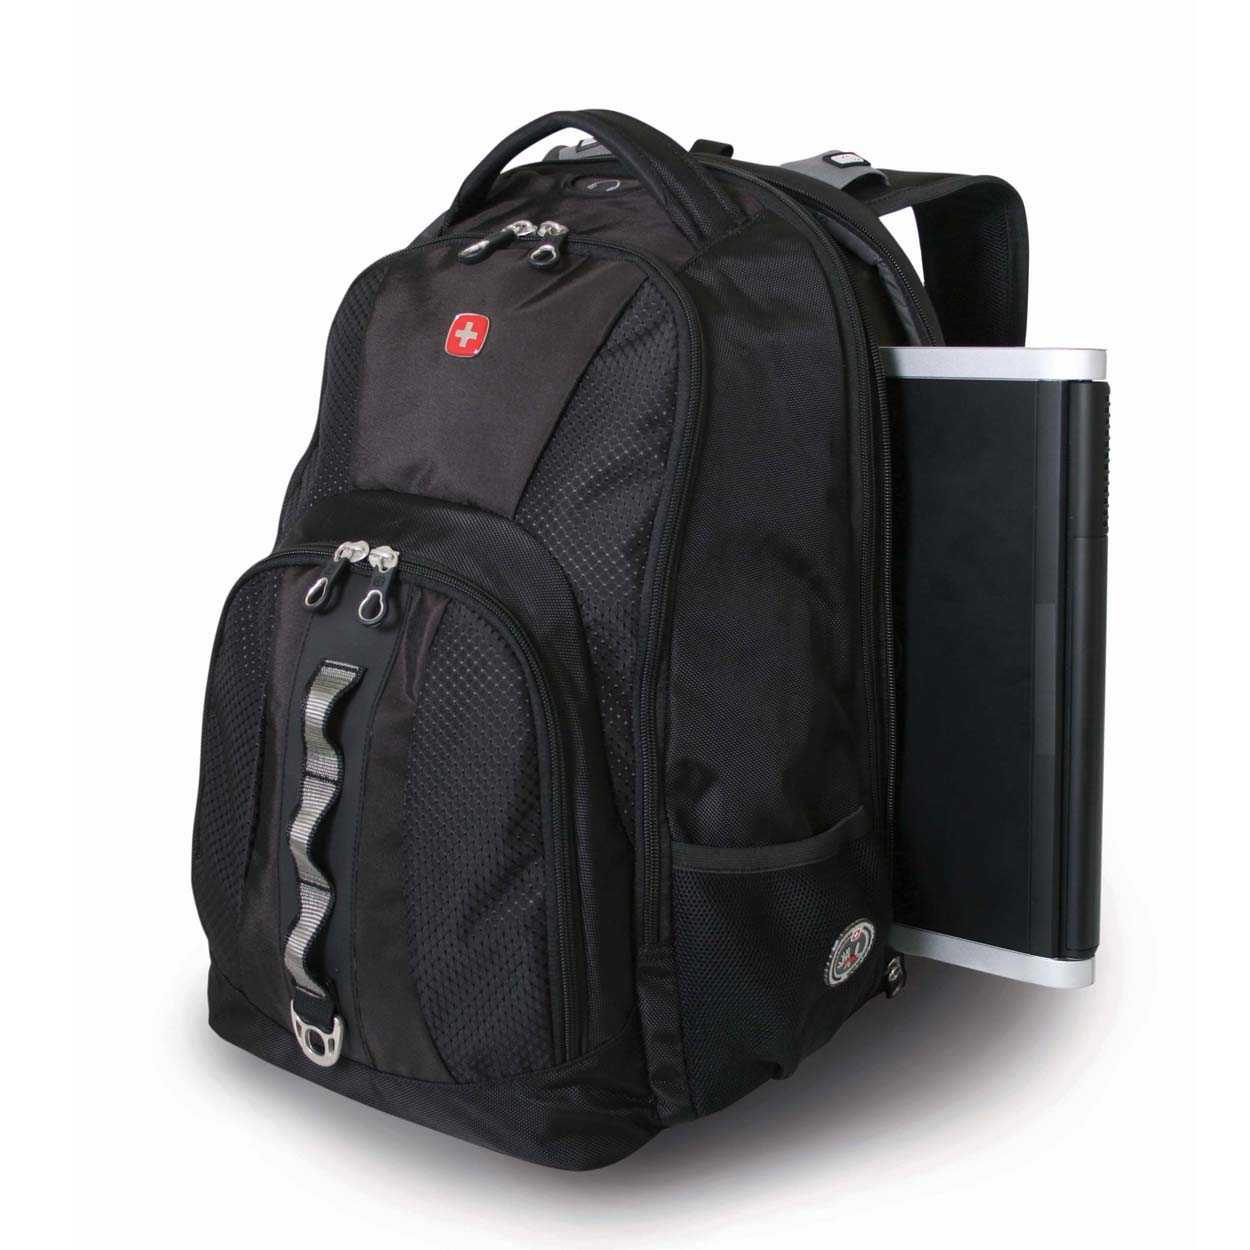 Swiss Gear Unisex ScanSmart Laptop Backpack BLACK O/S